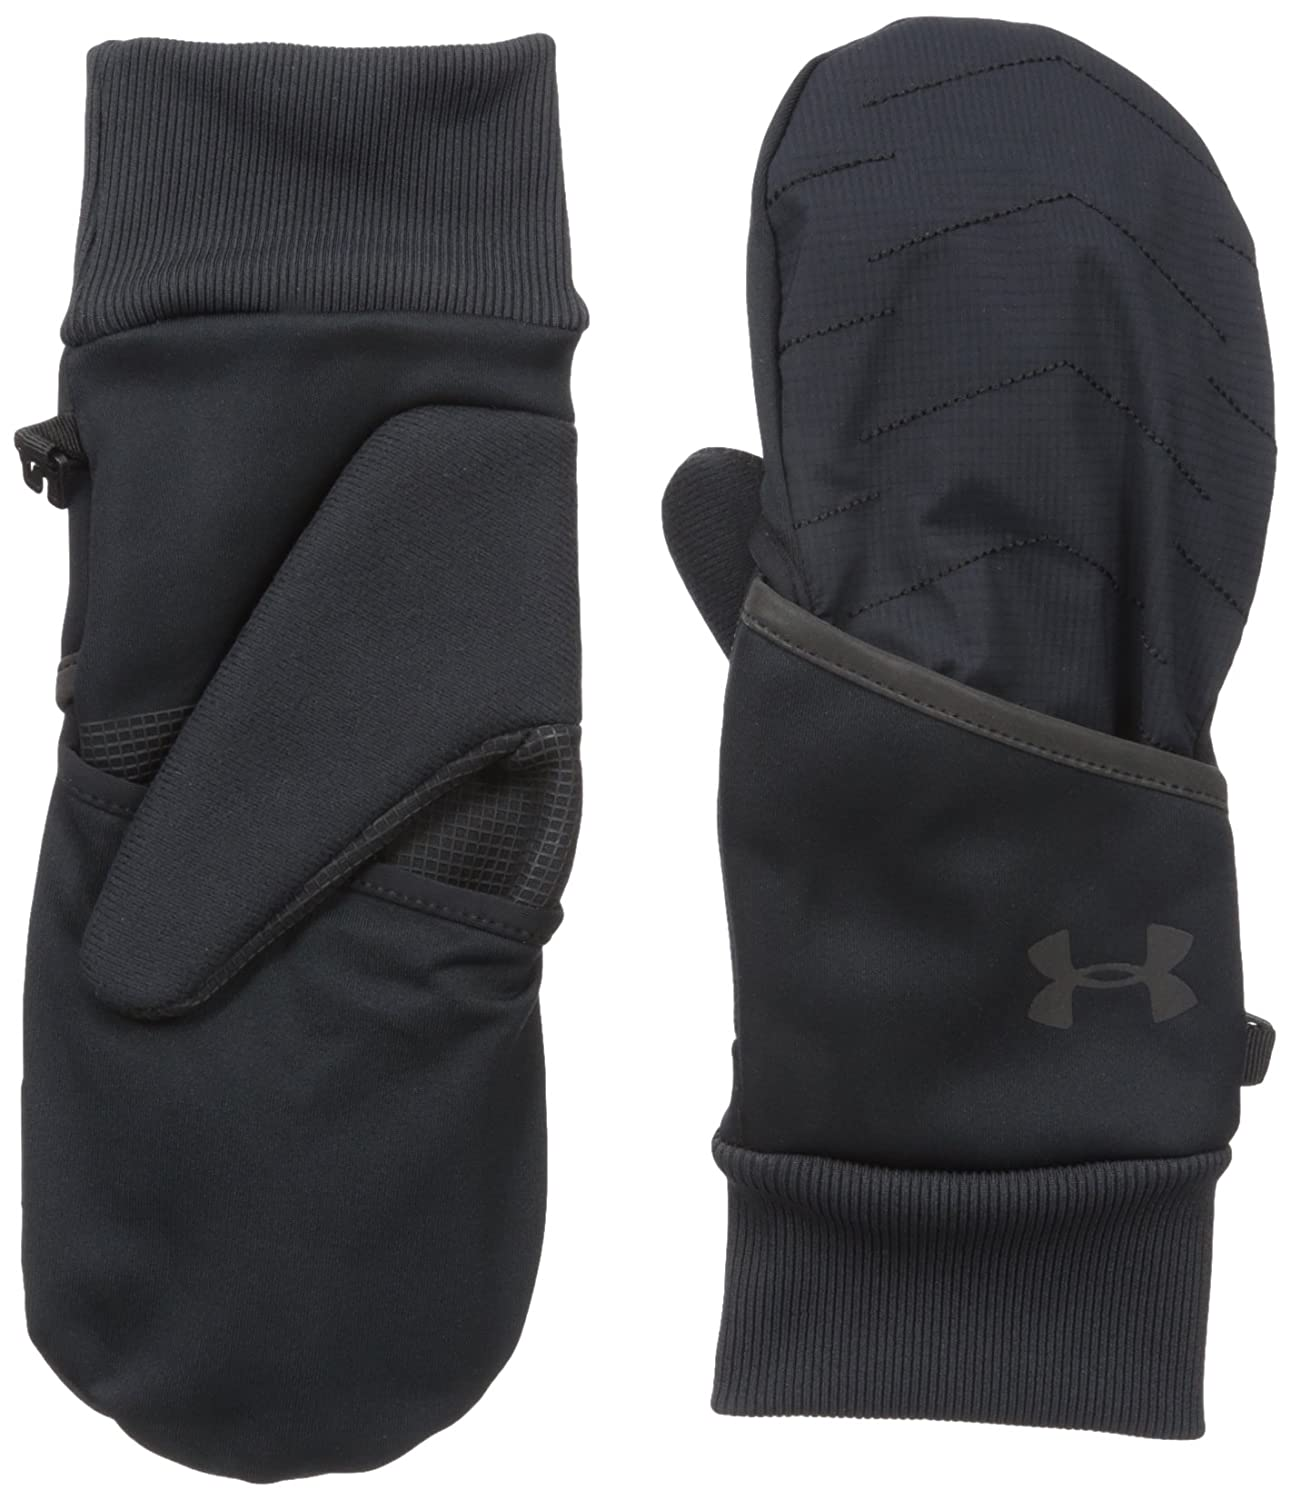 Under Armour Mens Cnvt Reactor Glove Under Armour Accessories 1298517